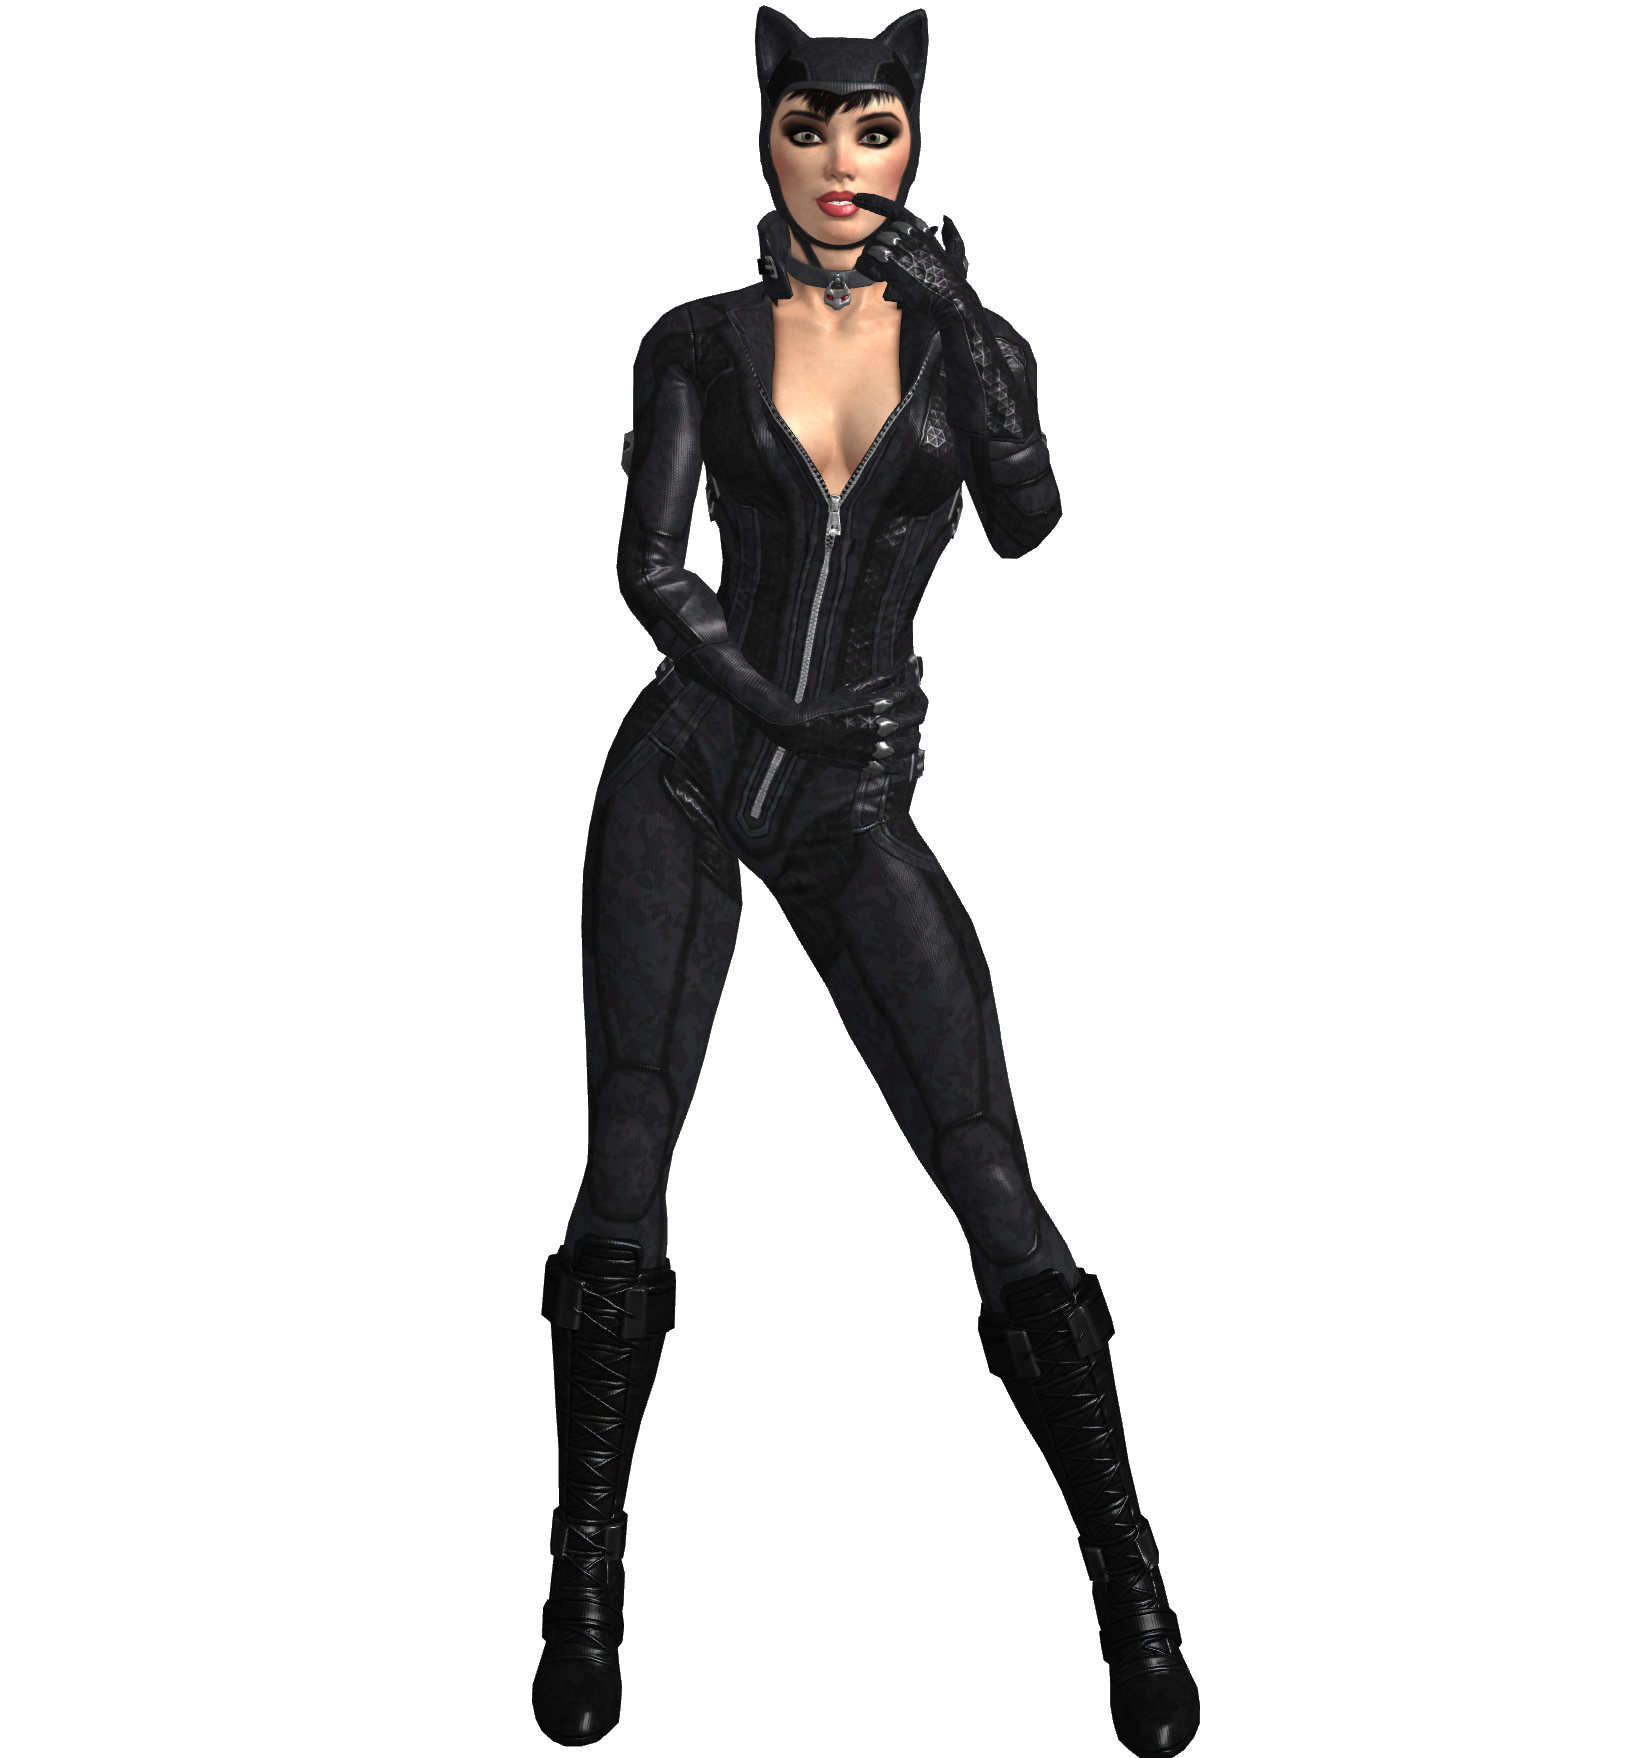 catwoman transparent whip